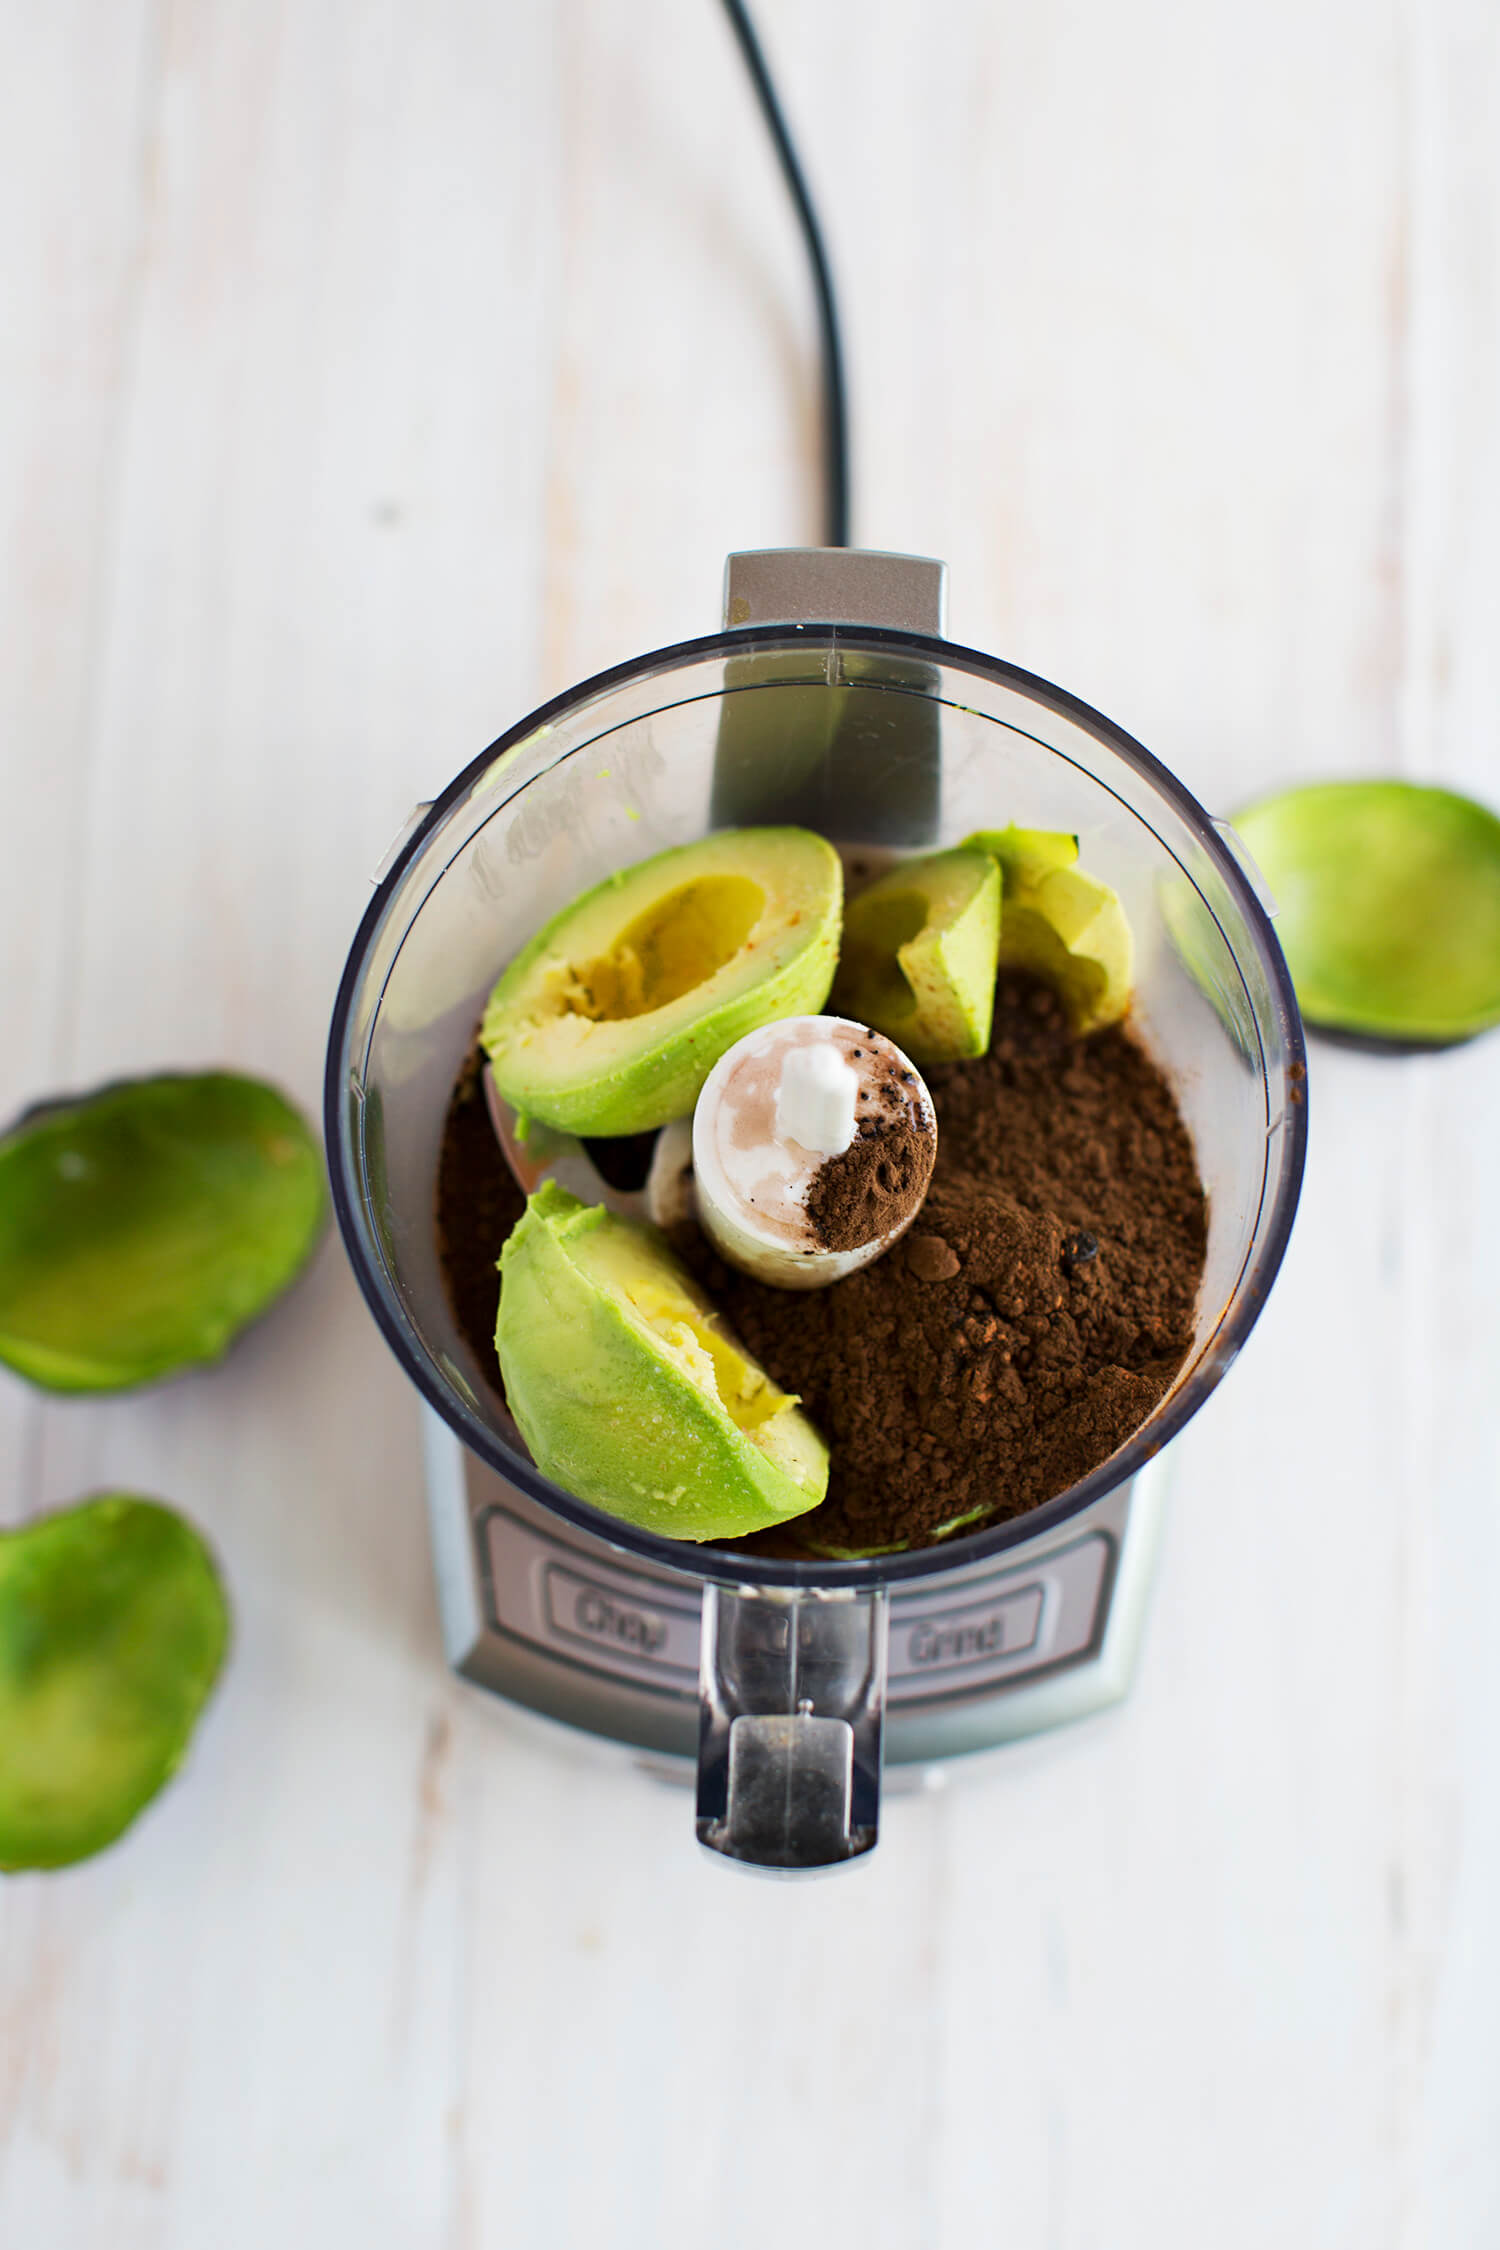 Chocolate avocado dip